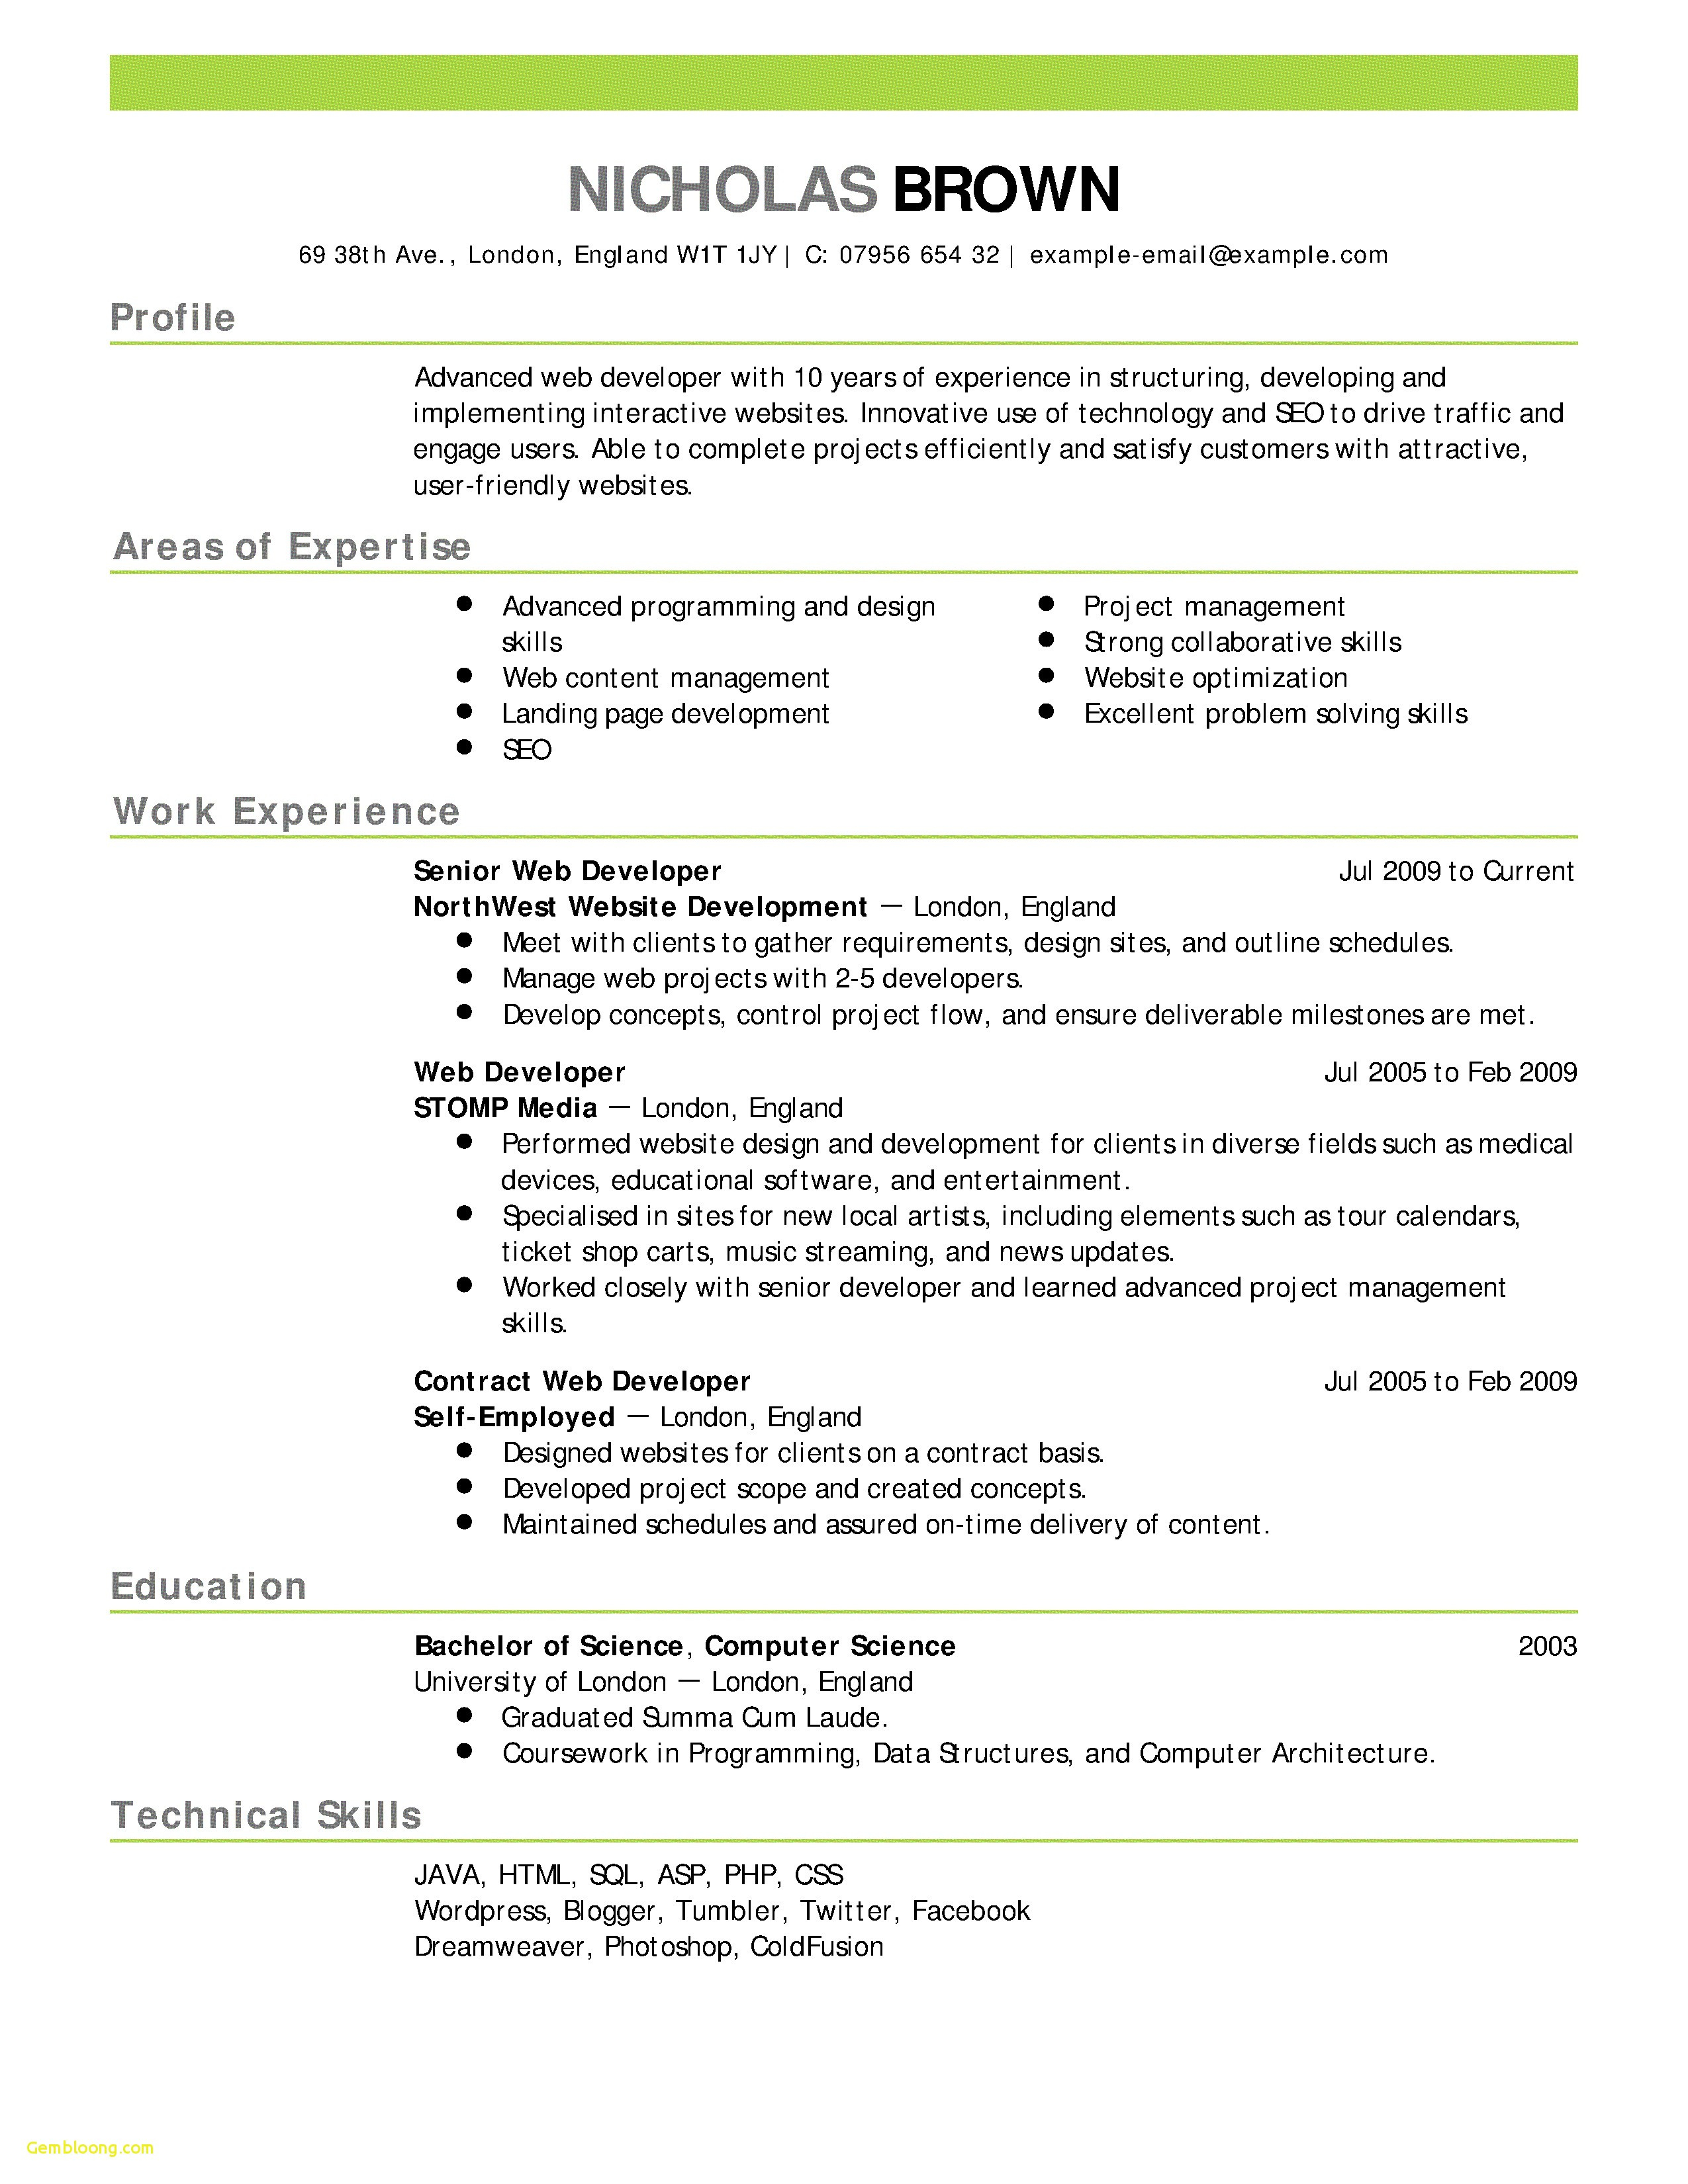 Attractive Resume Templates Free Download - Free Sample Resume Templates Elegant Elegant Pr Resume Template